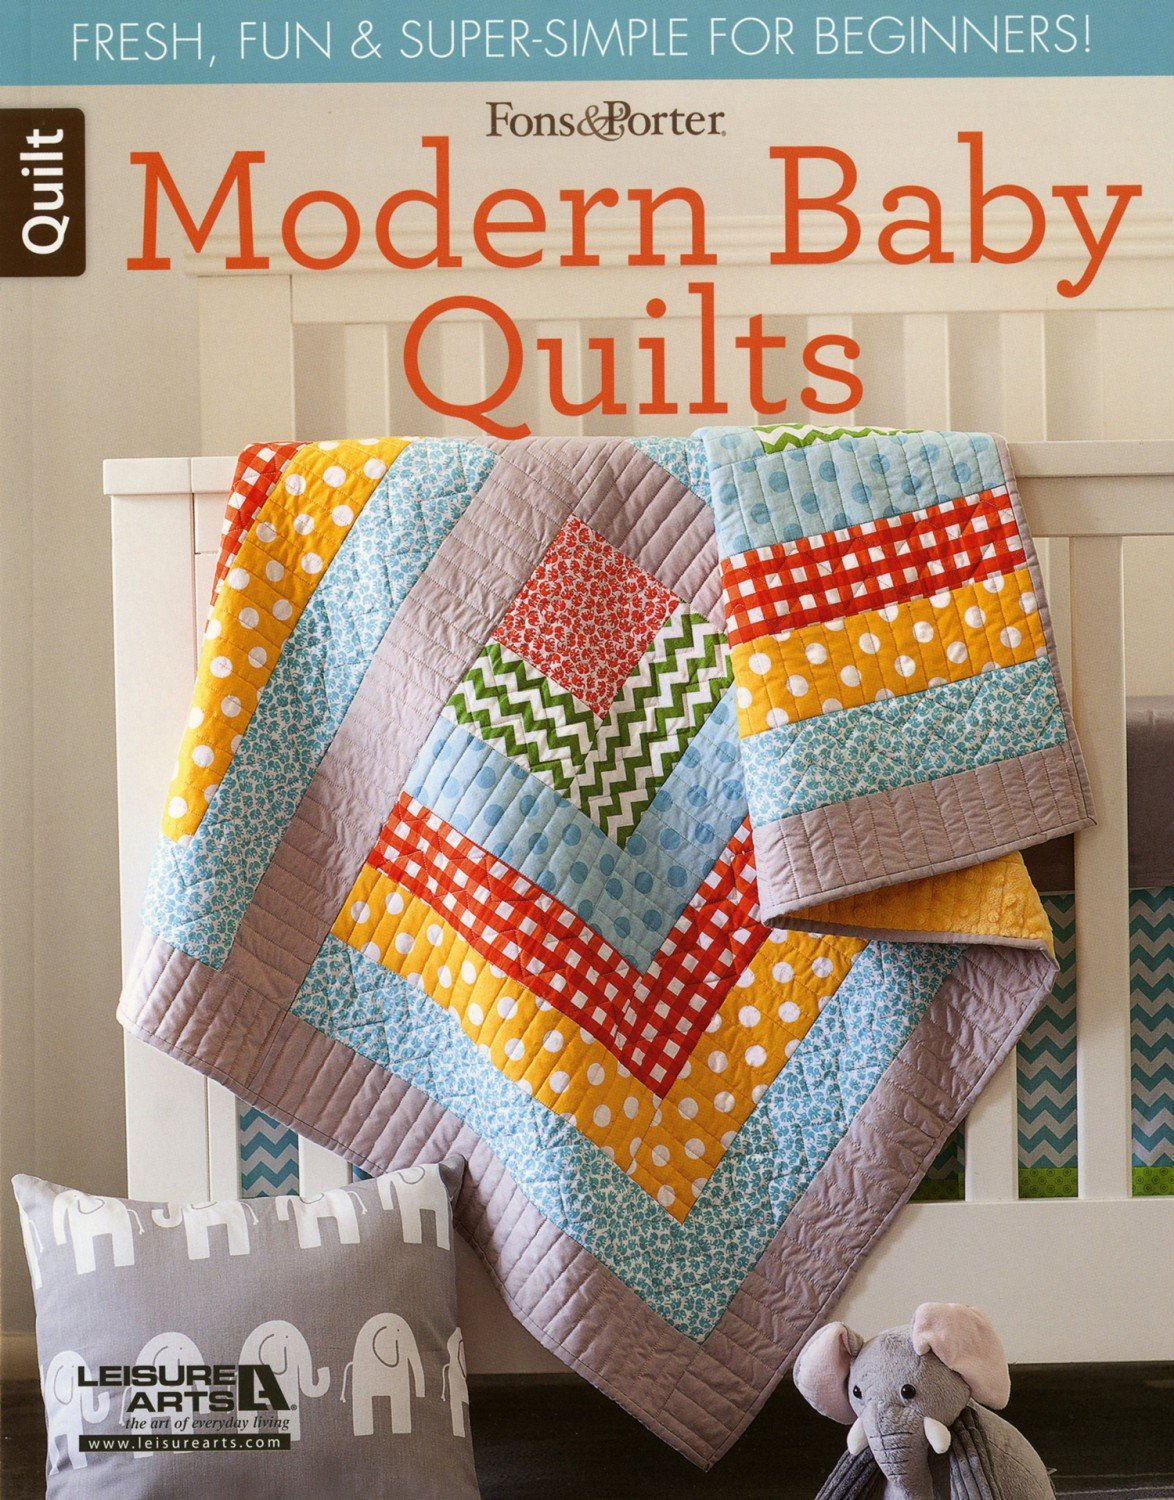 Modern Baby Quilts Book from Fons and Porter